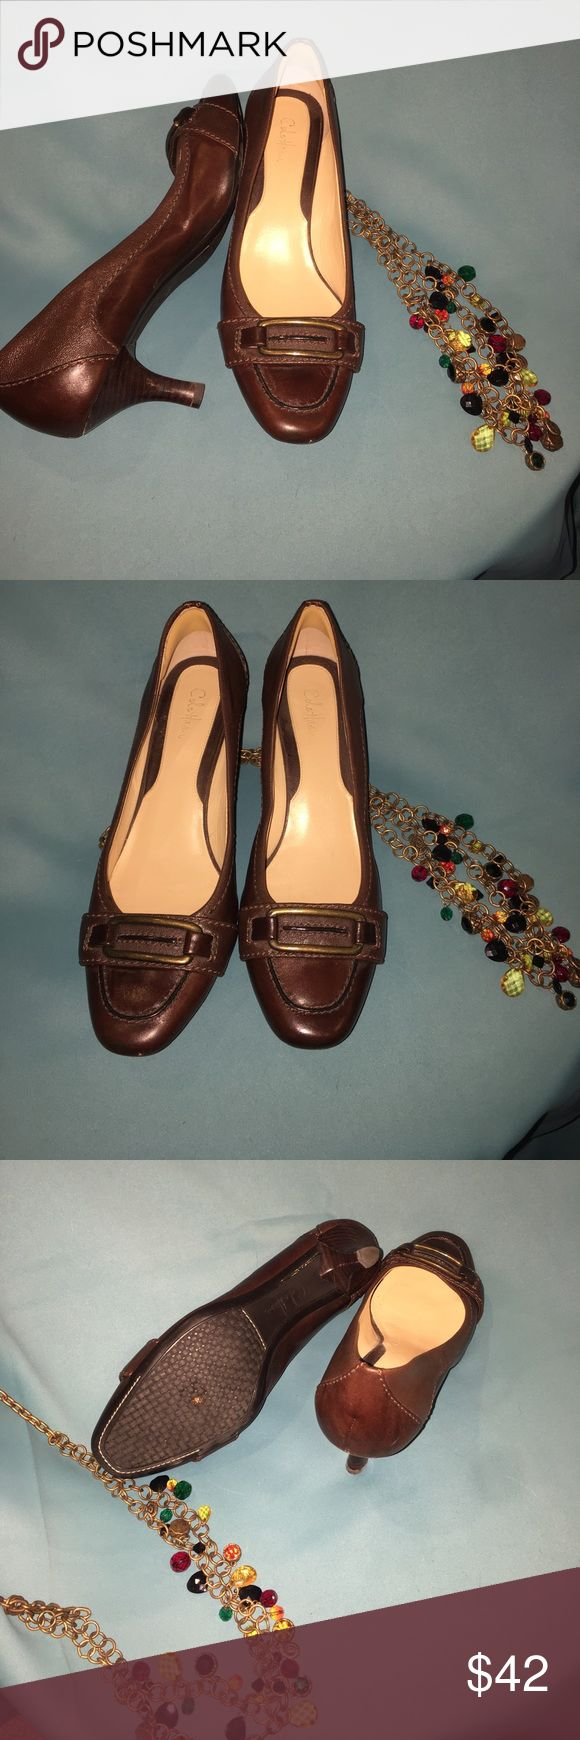 Cole Hann brown leather pumps 8.5 M Beautiful brown leather Cole Hann pumps, excellent condition, minor signs of wear. Cole Haan Shoes Heels